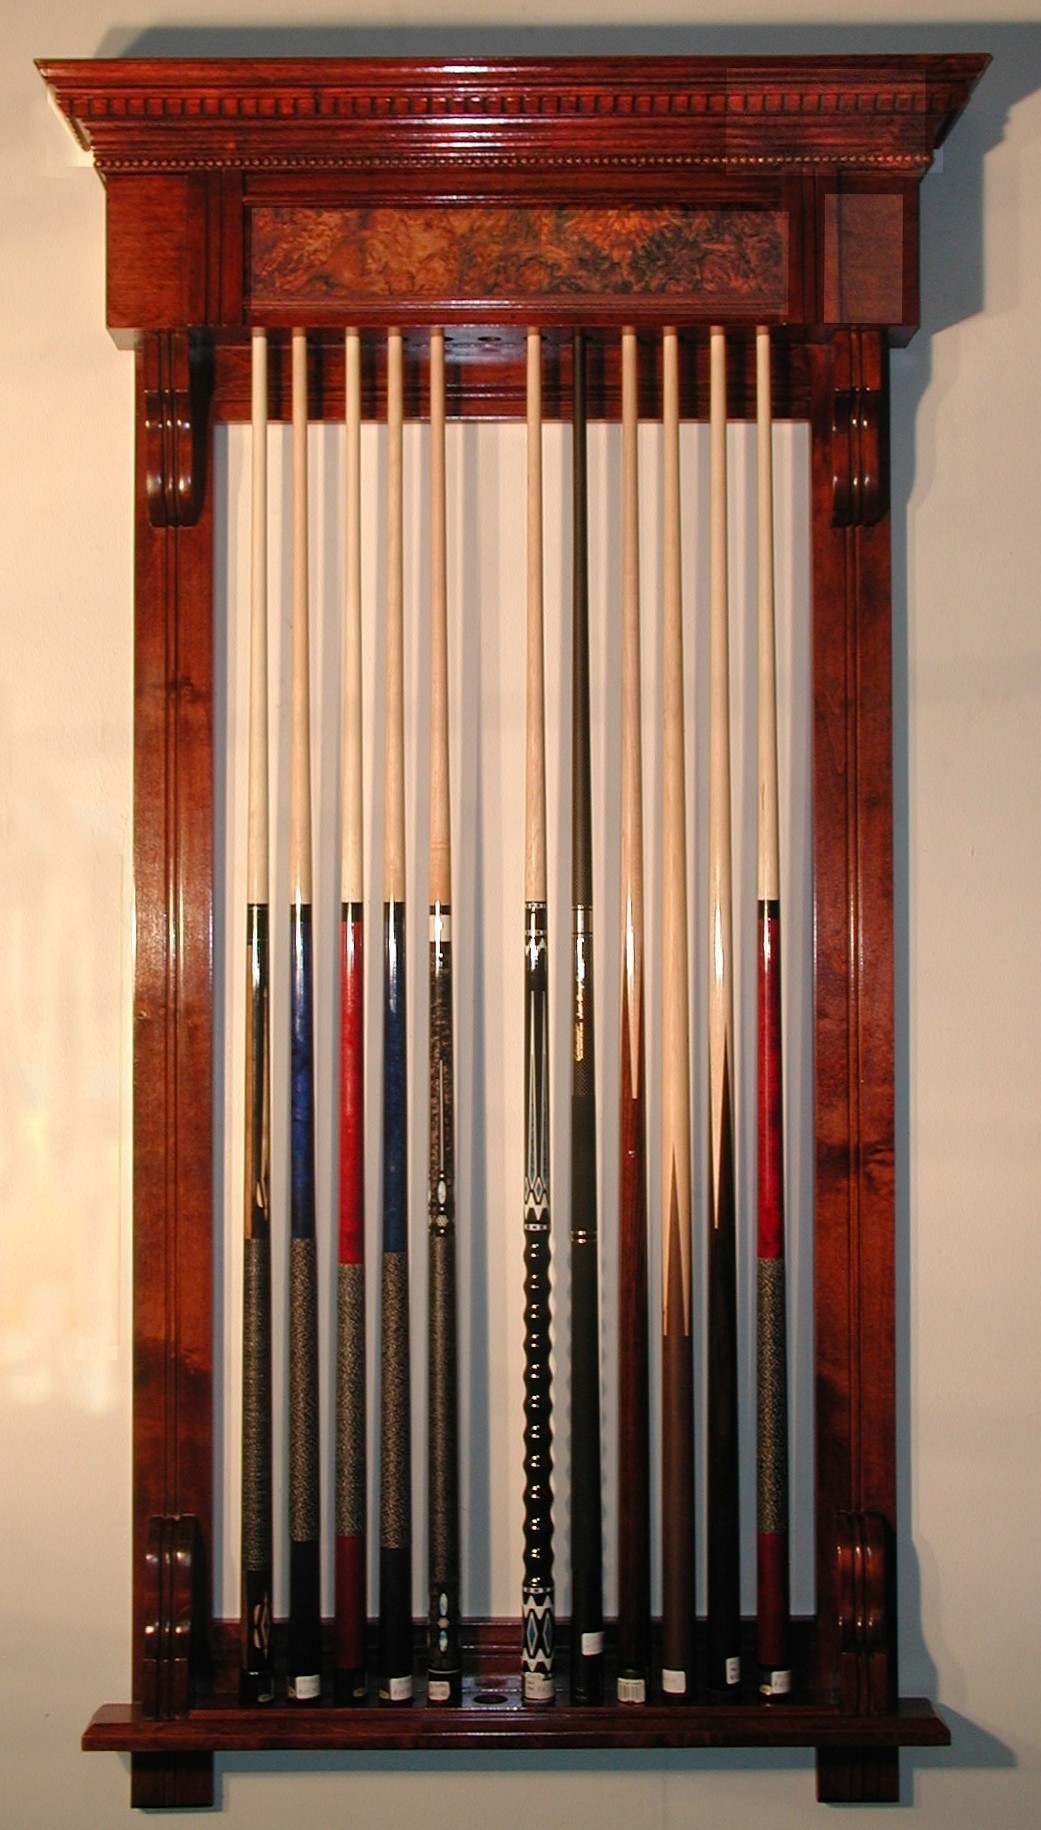 Snooker Cue Racks From Hubble Sports Est 1910